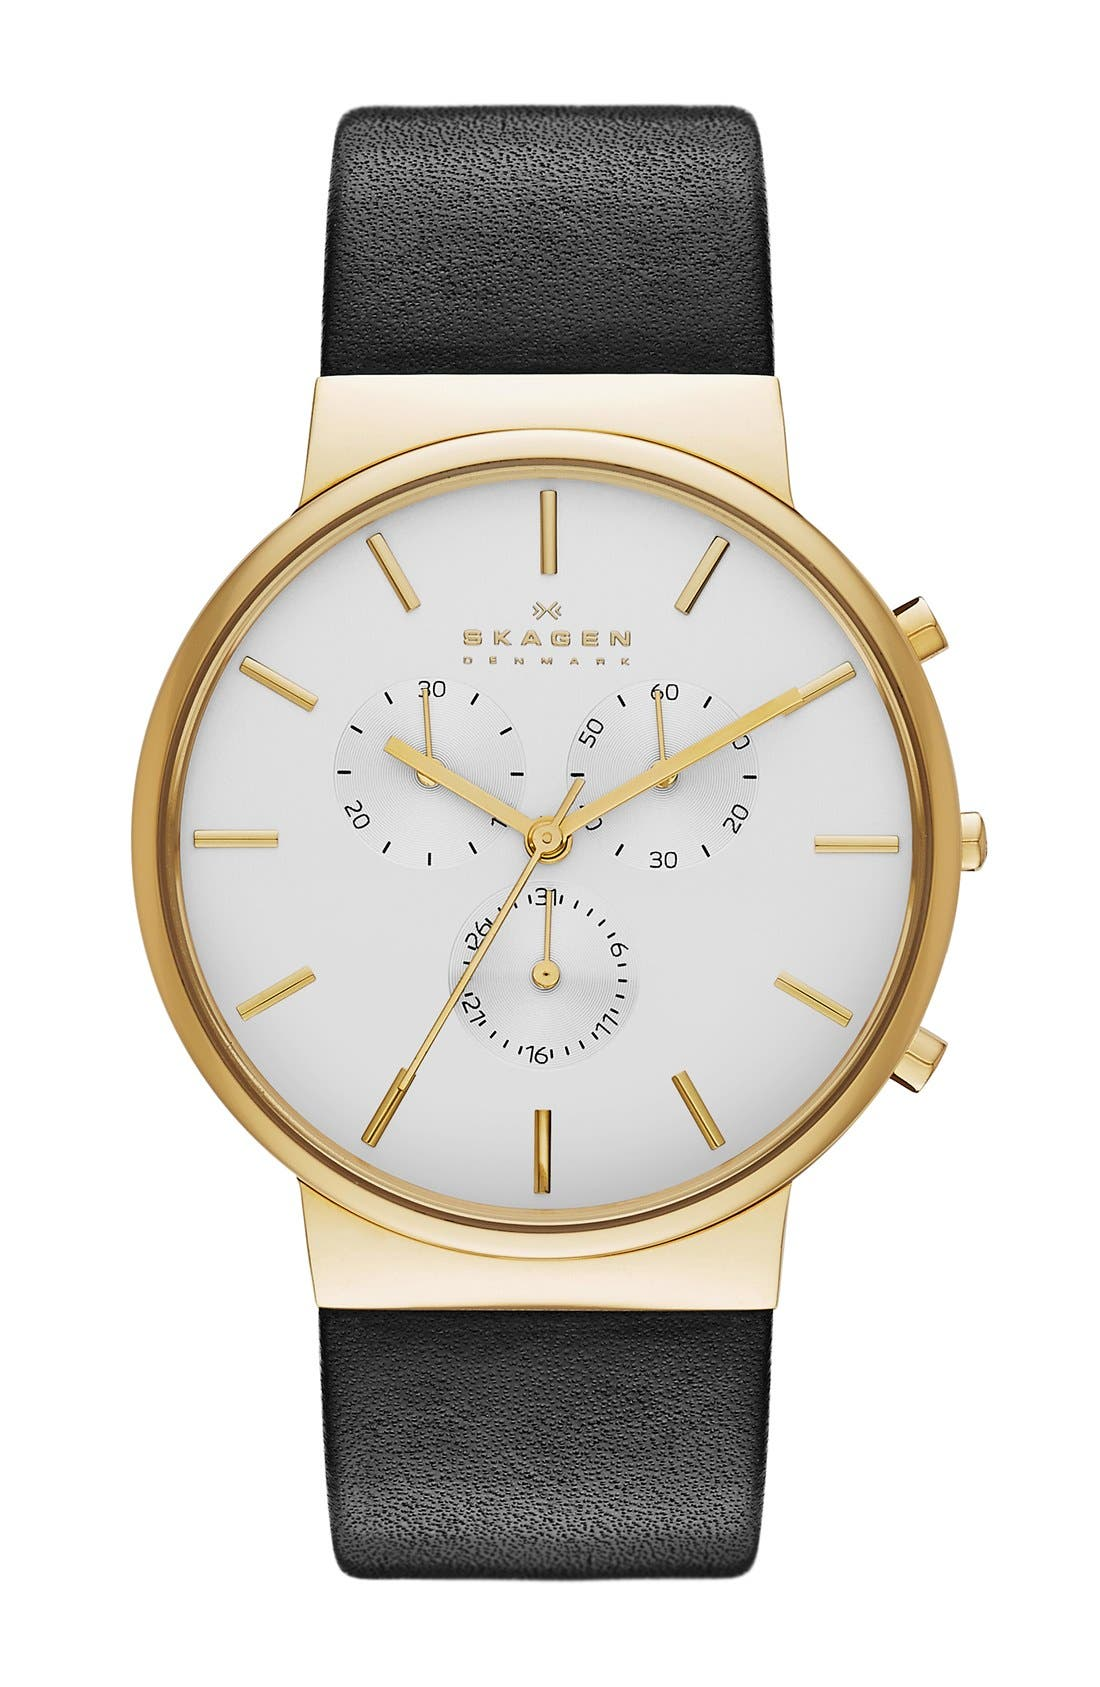 Main Image - Skagen 'Ancher' Chronograph Leather Strap Watch, 40mm